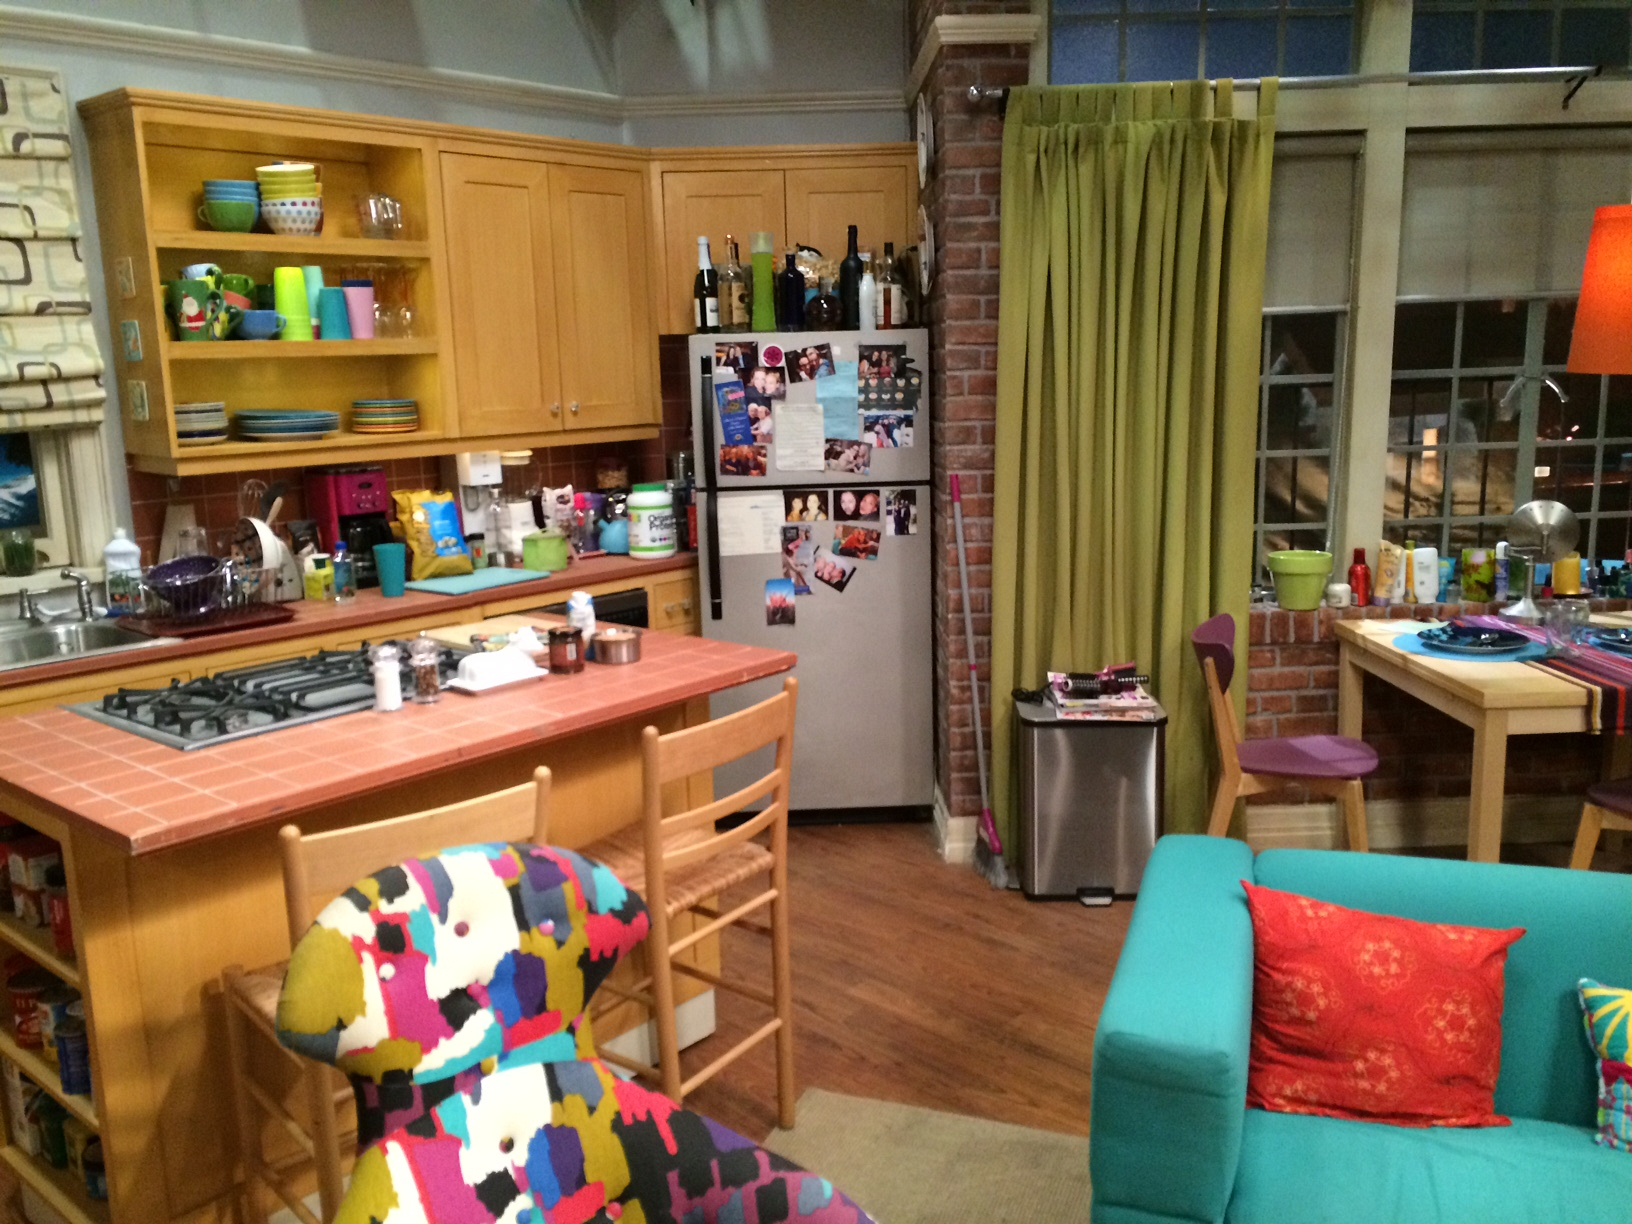 Penny's Kitchen - The Big Bang Theory